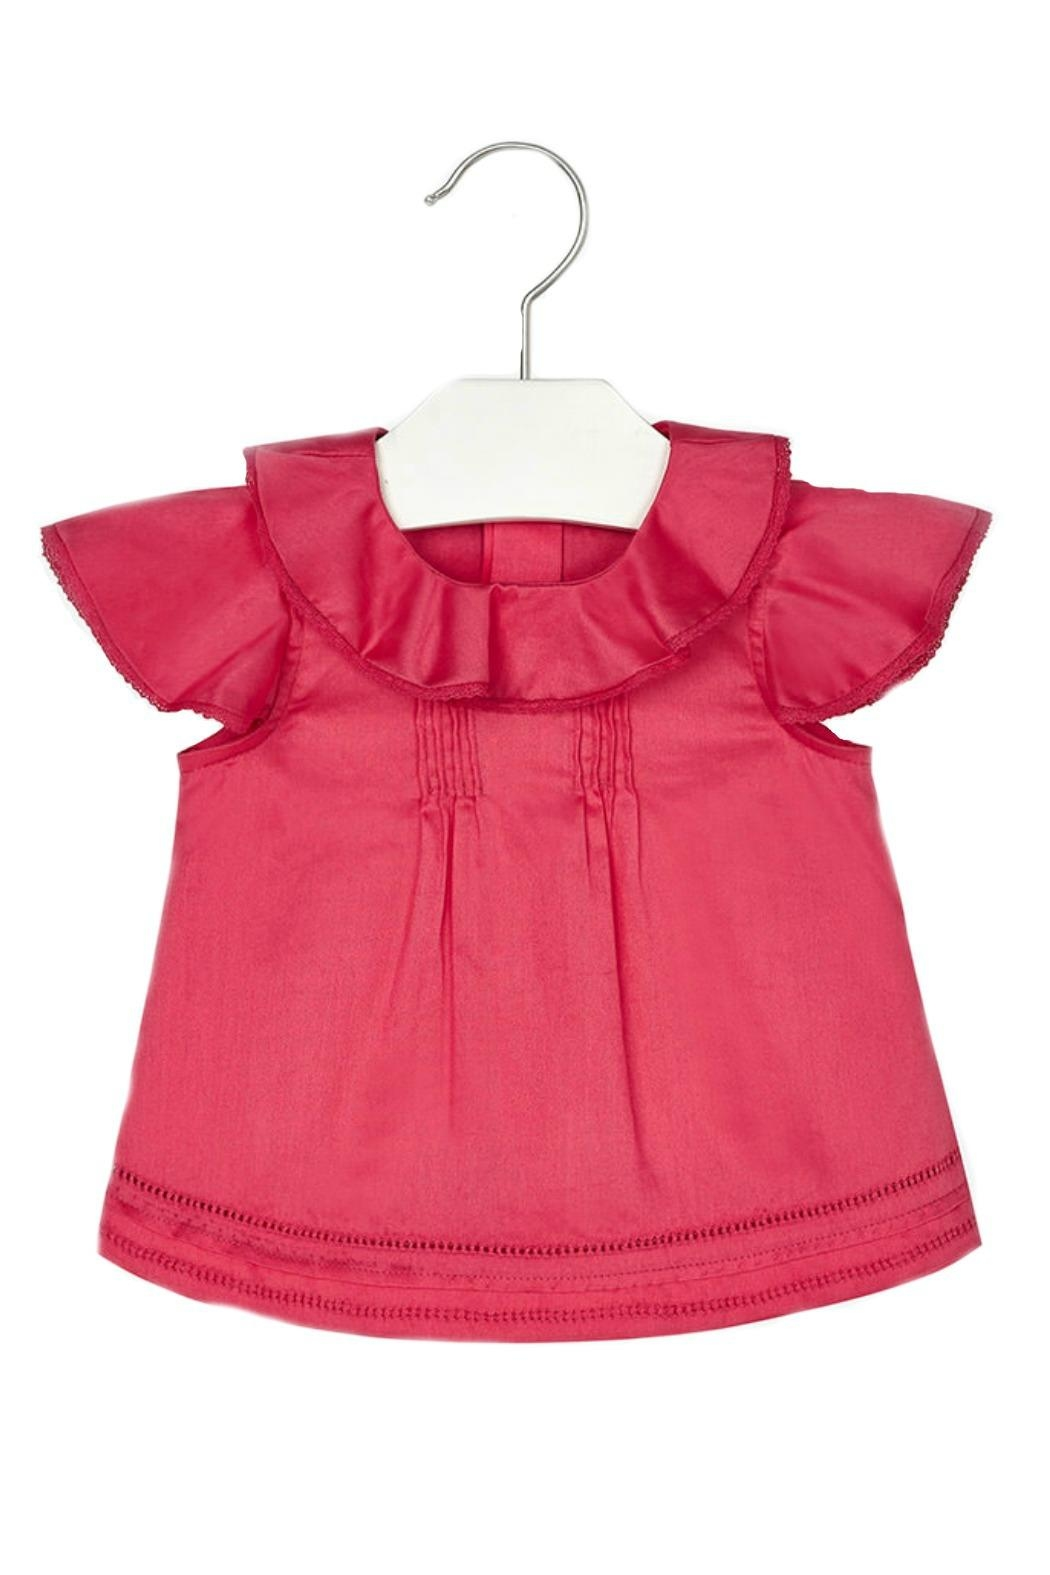 Mayoral Baby-Girl Ruffle-And-Embroidered Blouse - Main Image